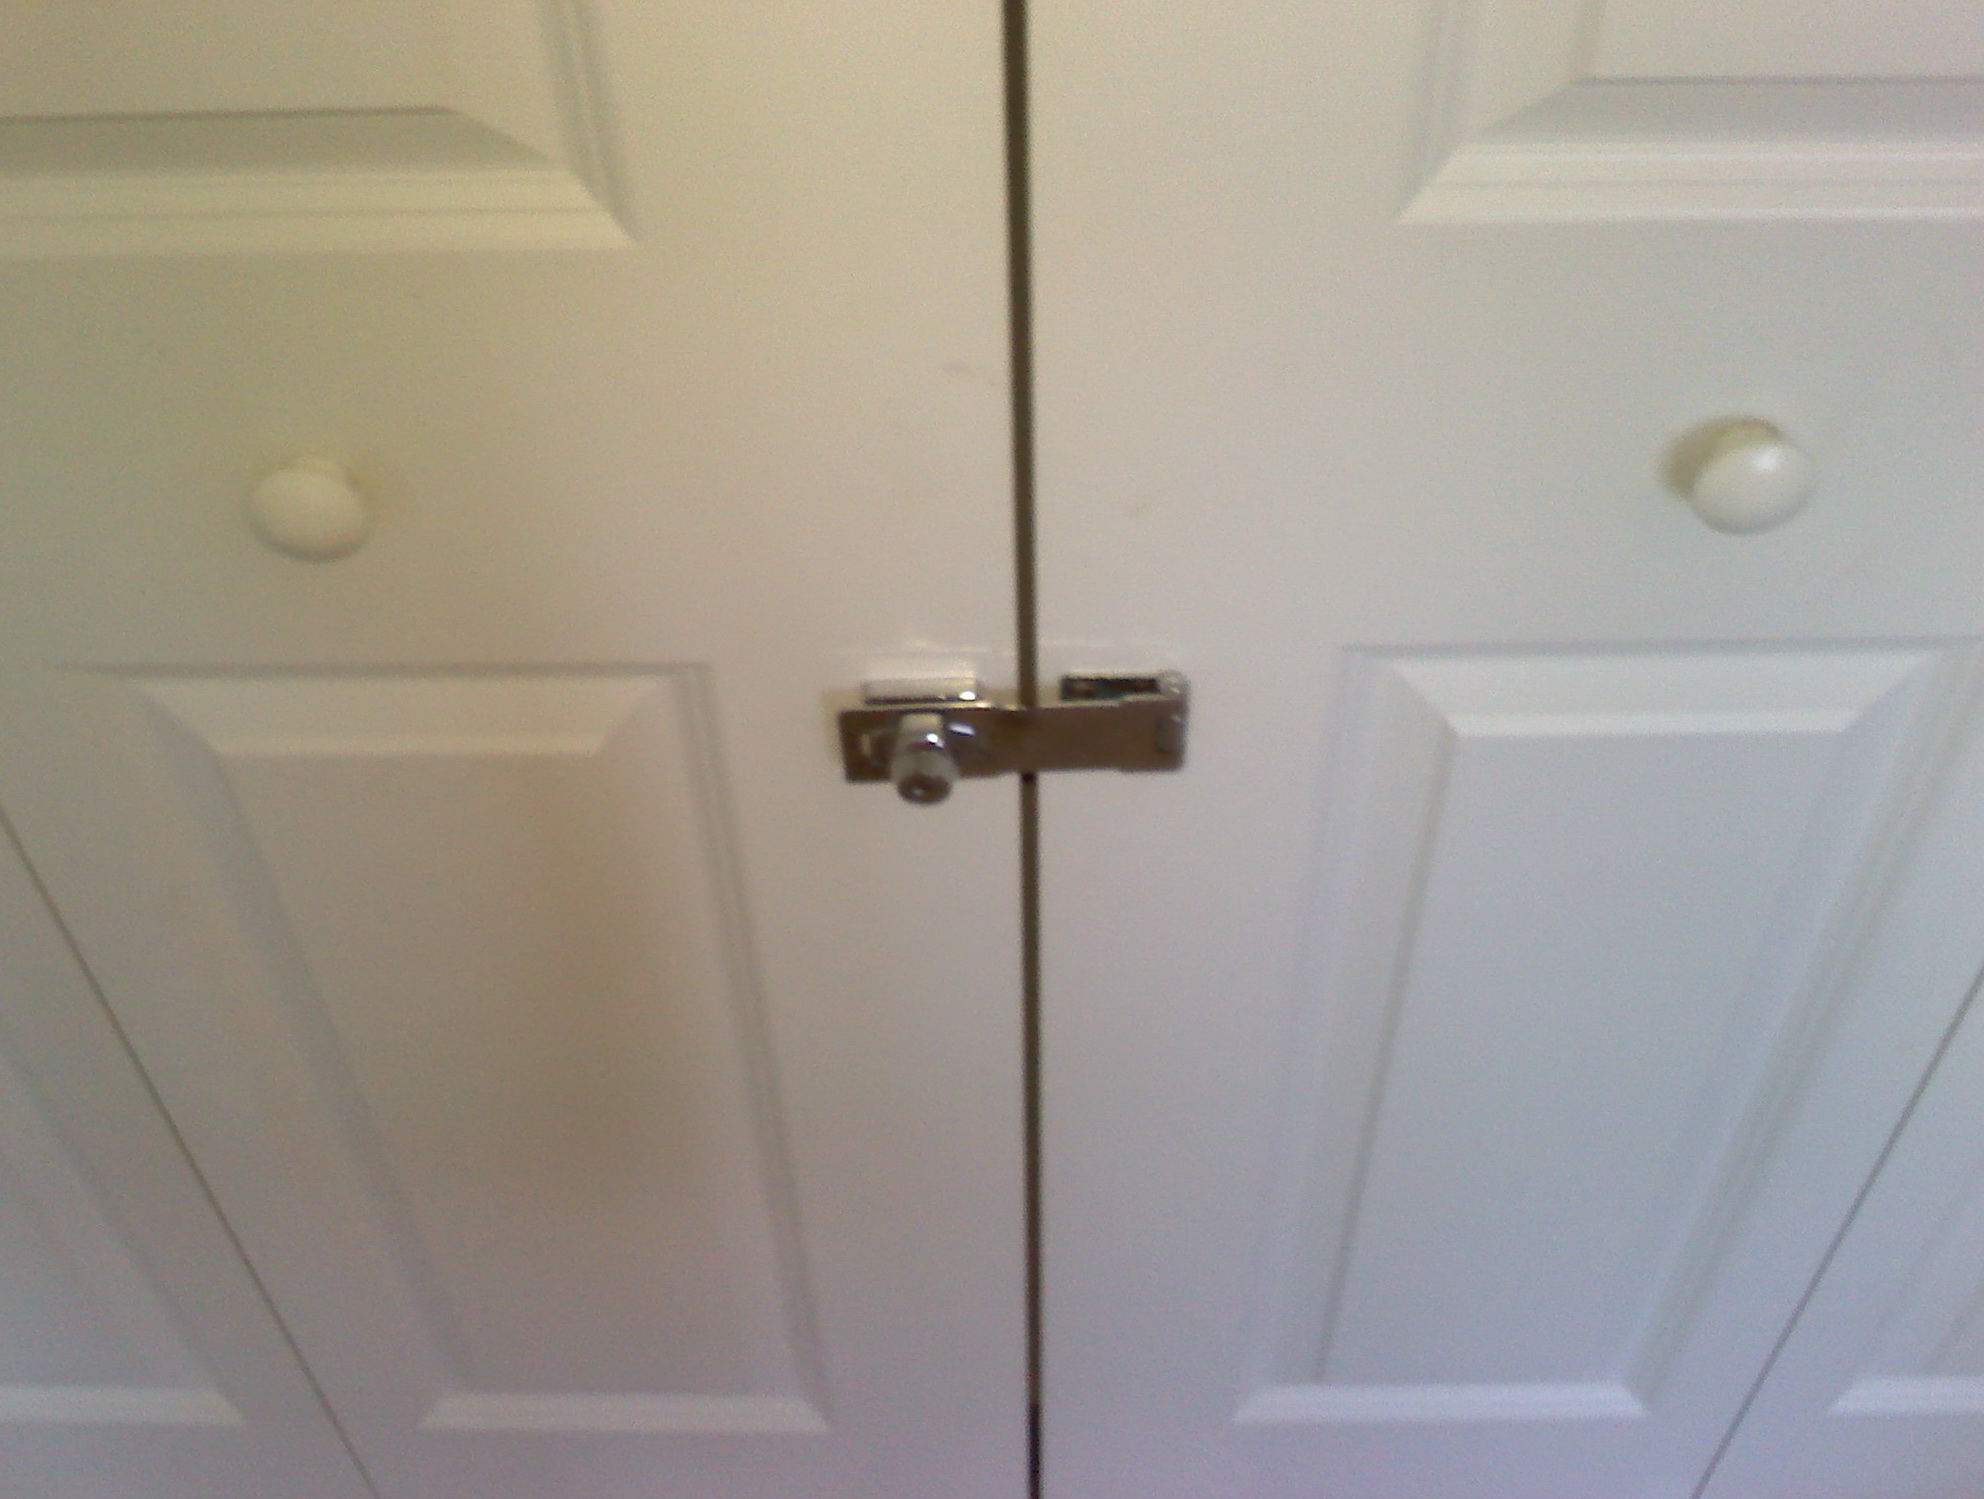 Mirrored Sliding Closet Door Lock 22 Secrets You Probably Didn 39 T Know Interior Exterior Ideas